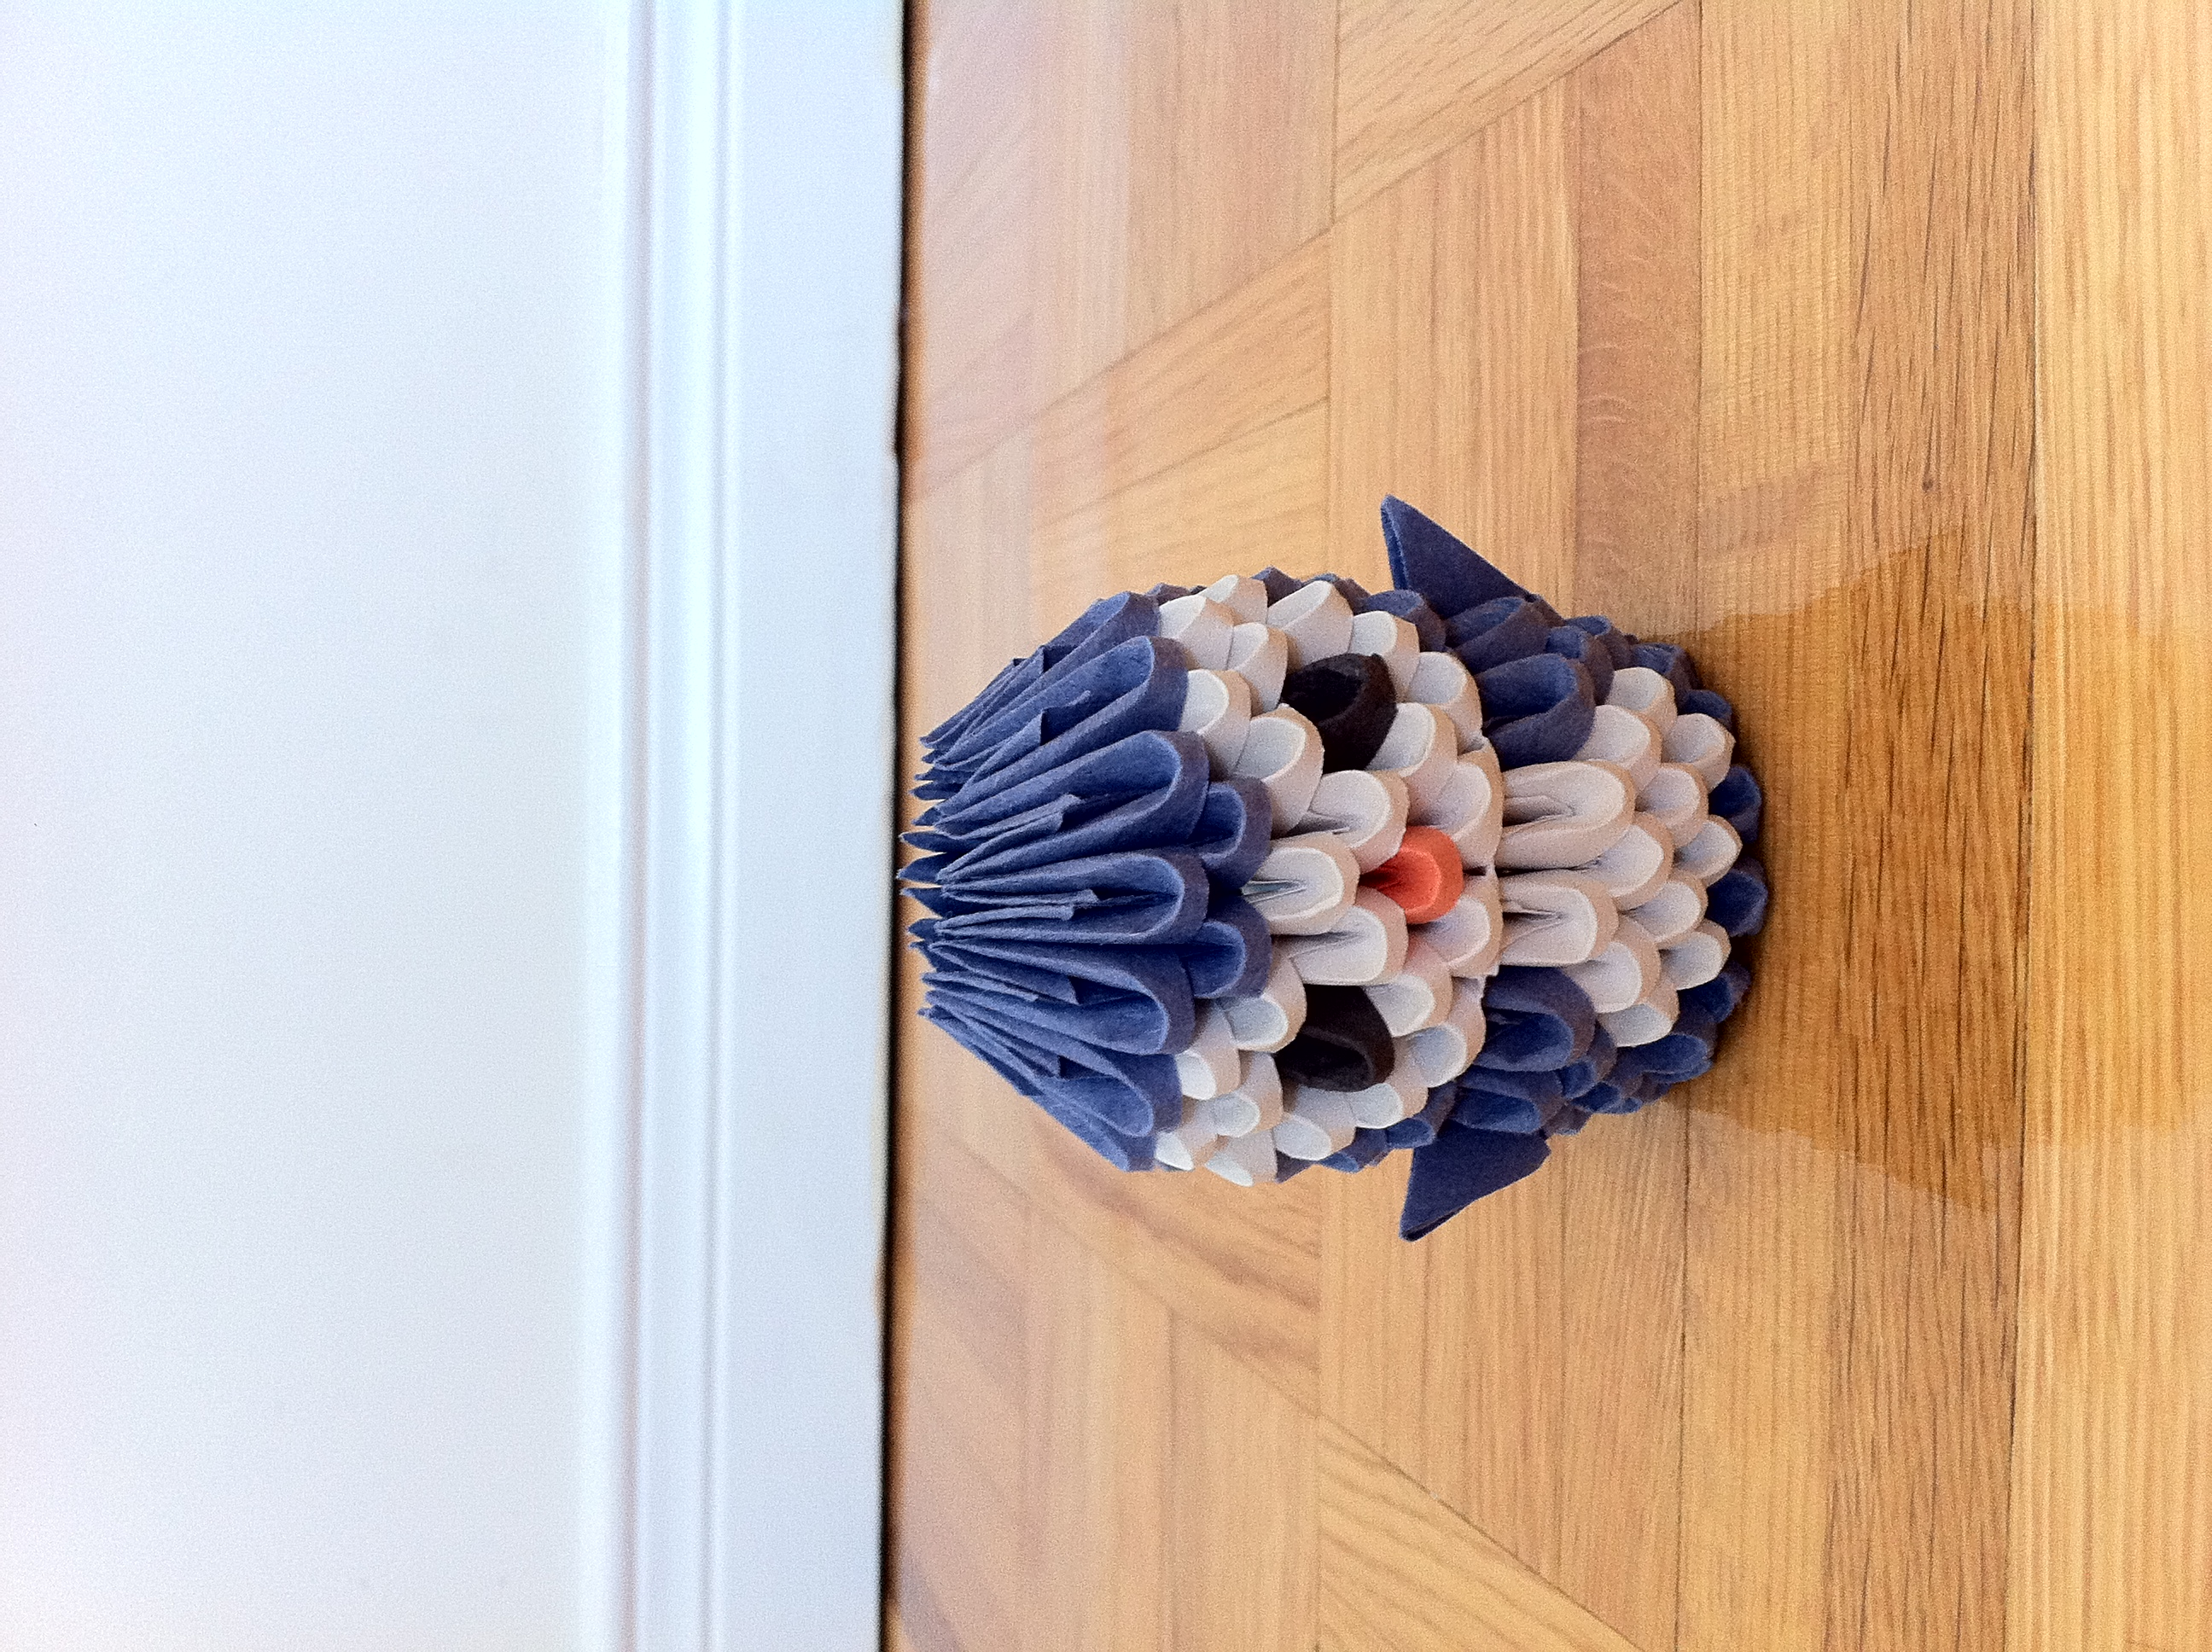 77+ 3d Origami Penguin - 3D Origami Penguin By ... - photo#38